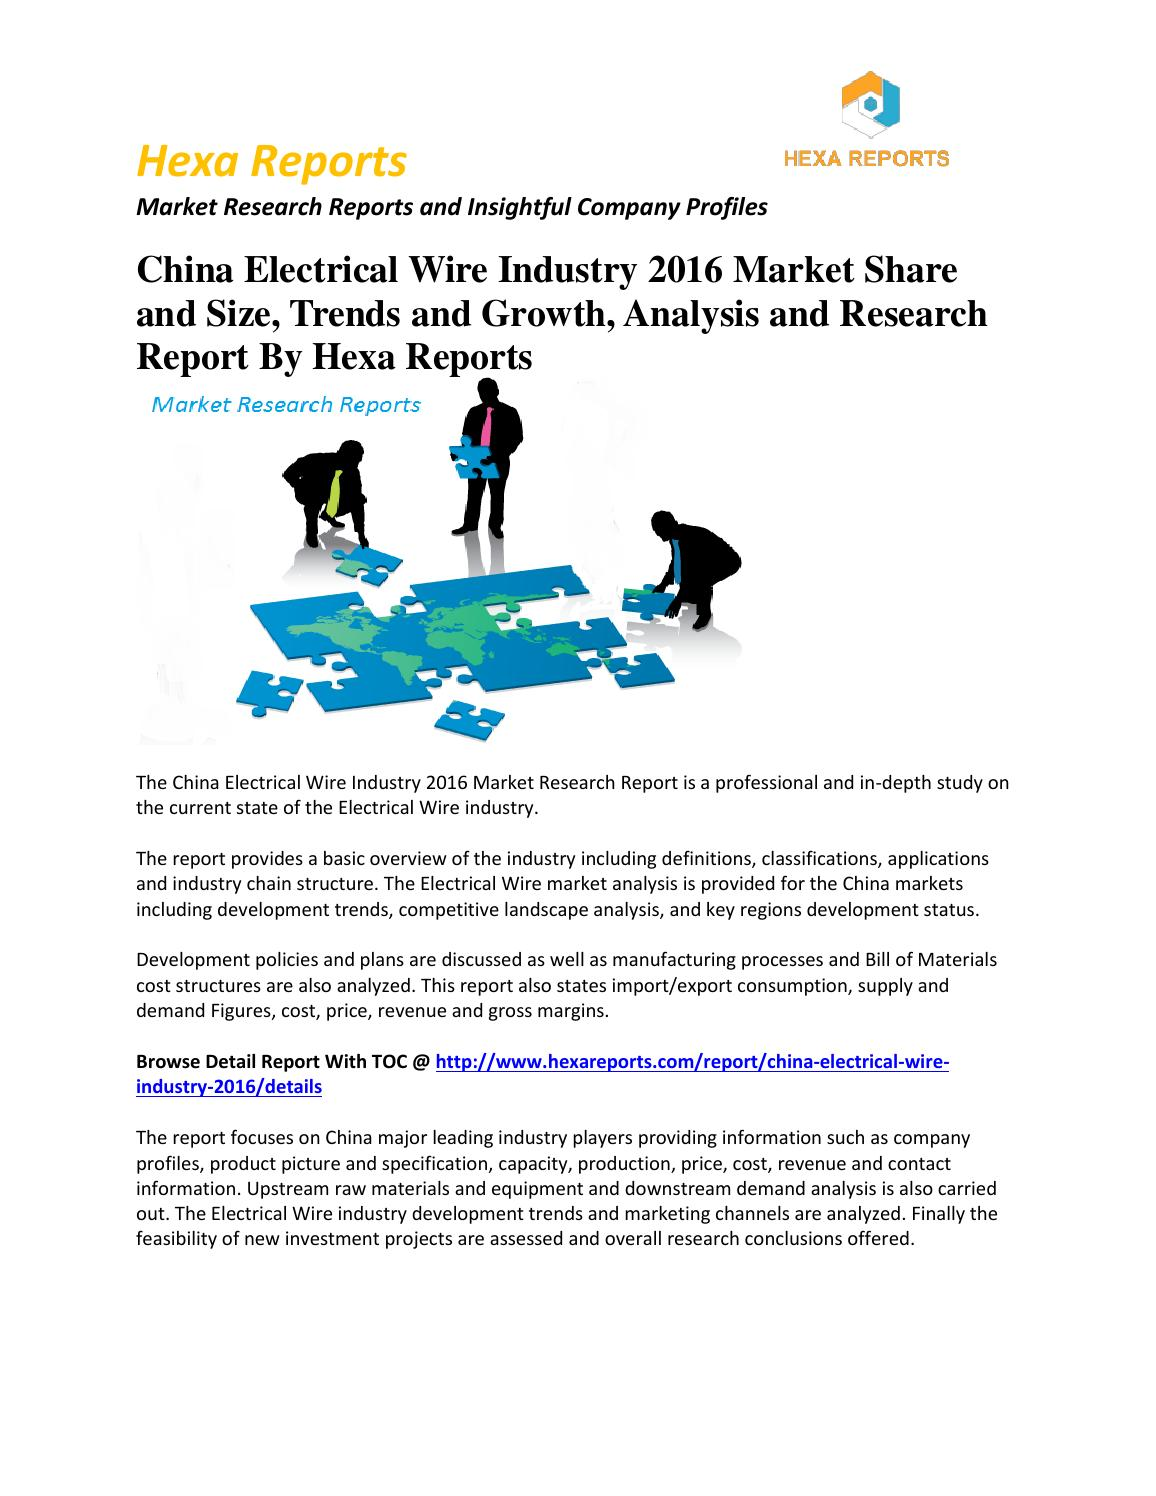 Electrical Wire Price Trends Center Home 1ft Nema 650p To L620r Converter Power Cord 14 3 Soow China Industry 2016 Market Share And Size Rh Issuu Com Types Of